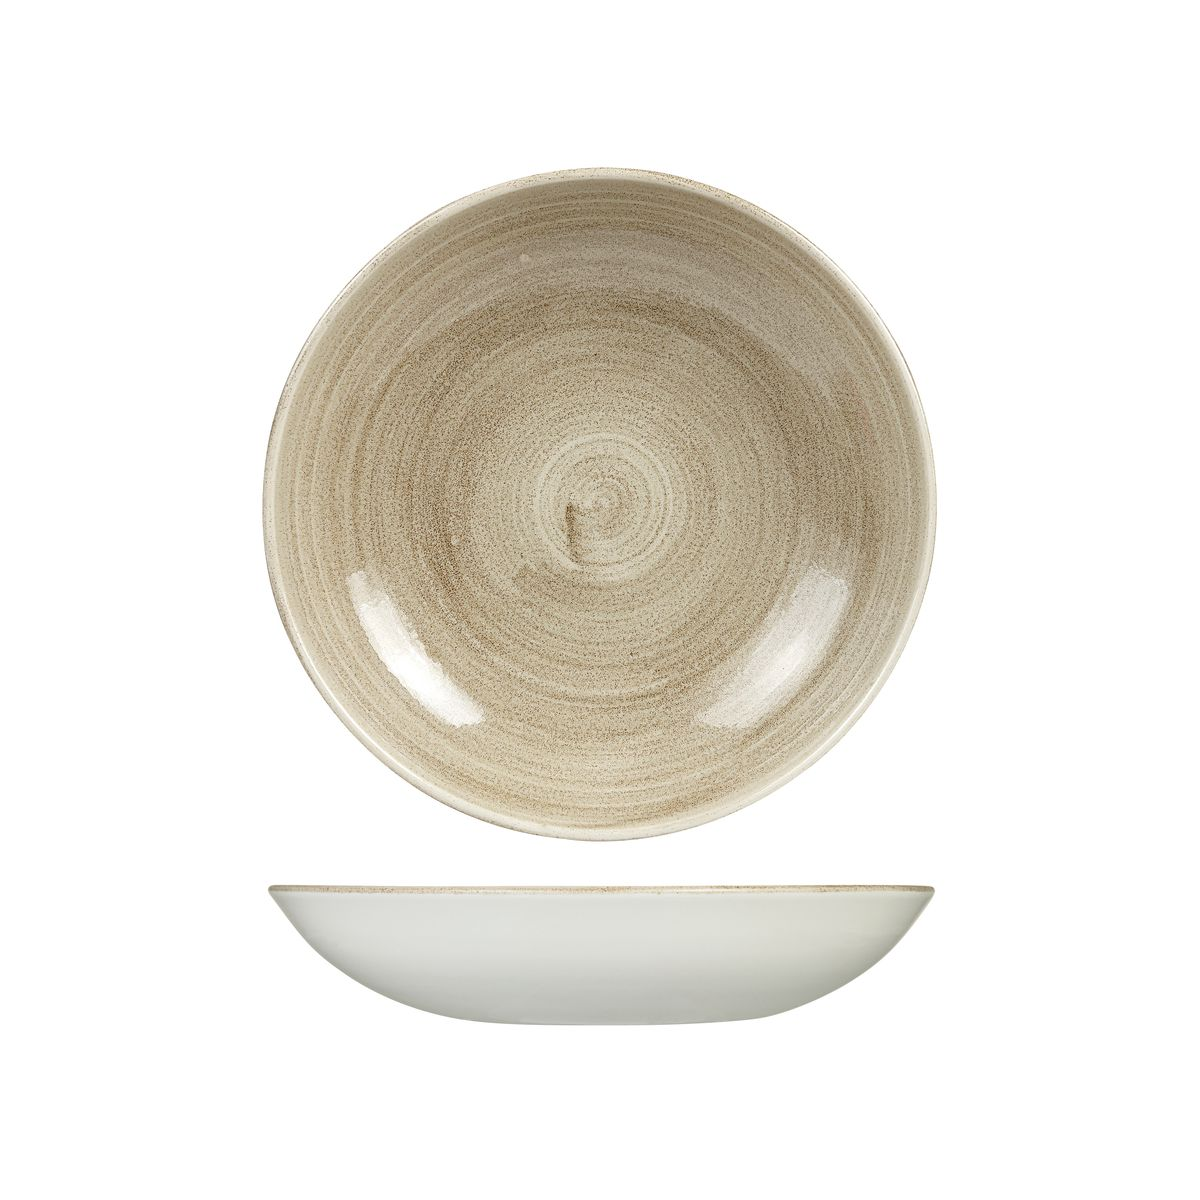 Trenton international patina round coupe bowl for Cuisine complete taupe